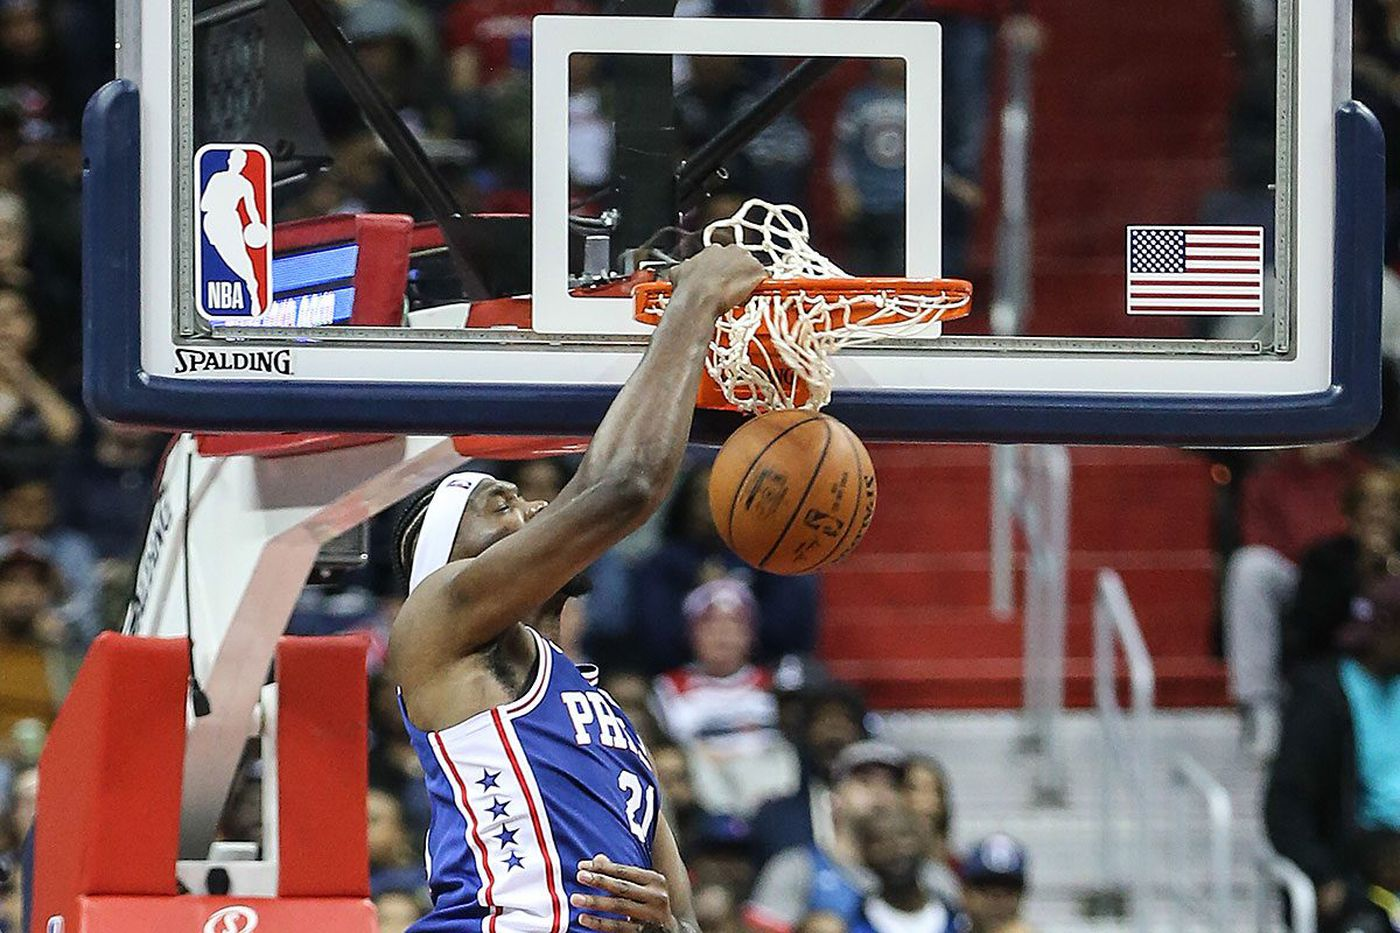 Sixers' Joel Embiid raring to play at Wells Fargo Center